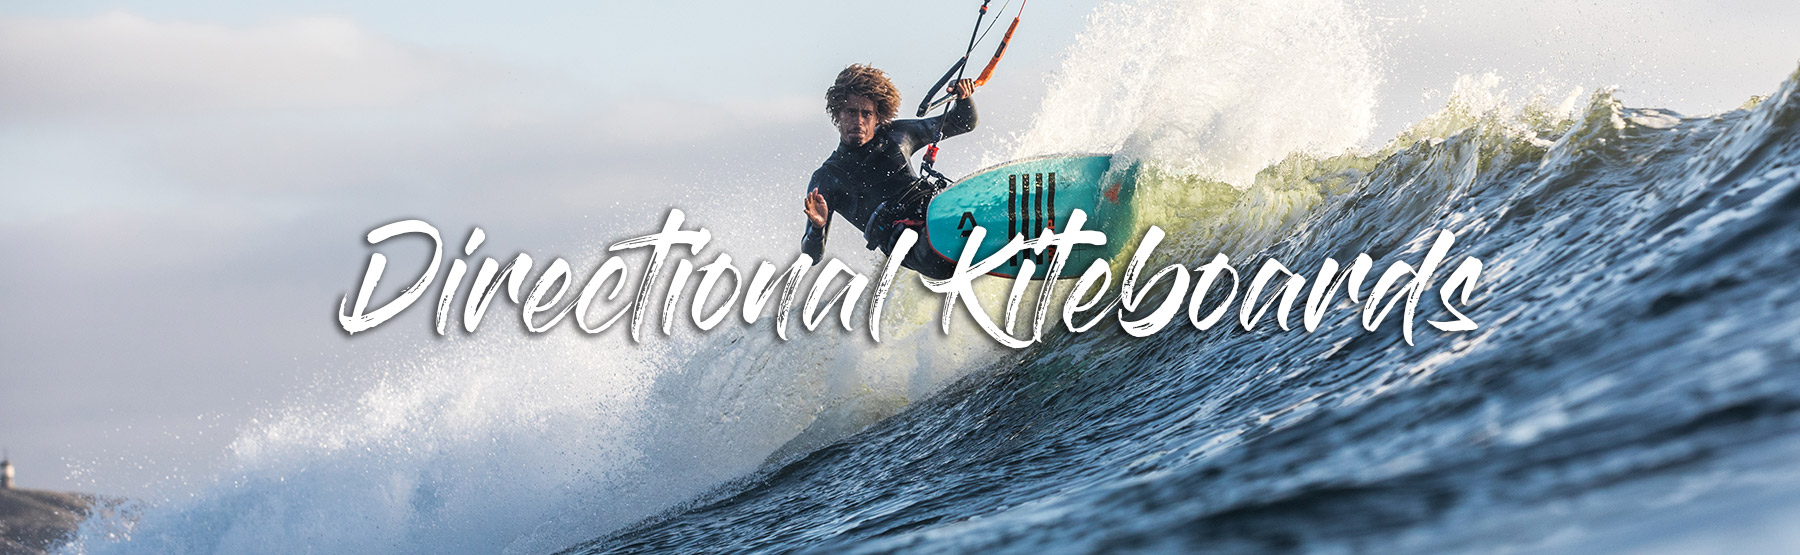 Directional Kiteboards